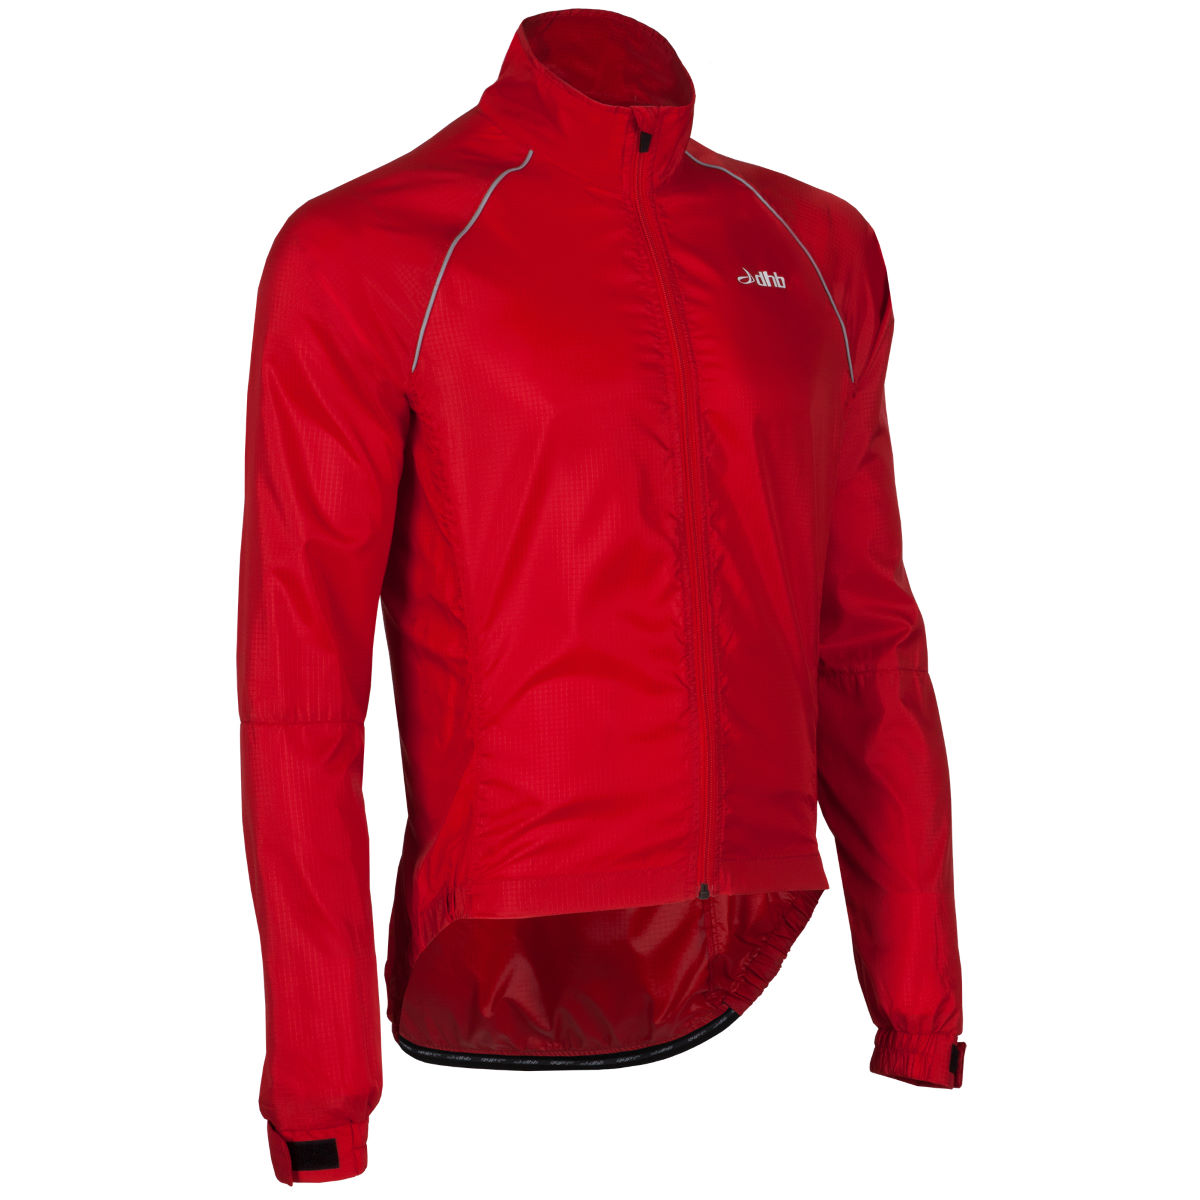 dhb Active Waterproof Cycle Jacket